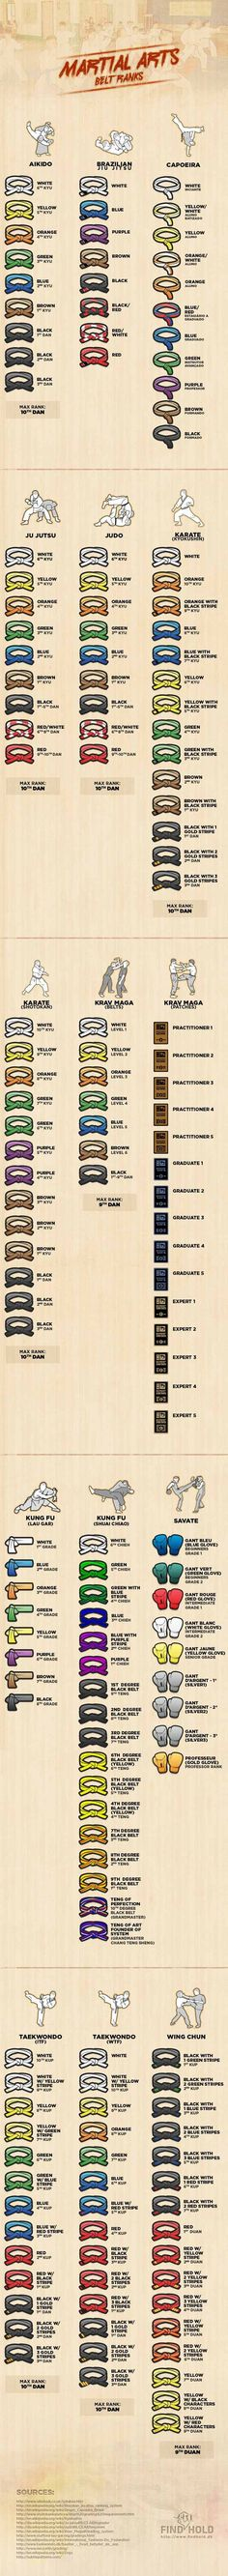 15 Martial Arts Belt Rankings Infographic. I don't know karate, I know Ka-RAZY!